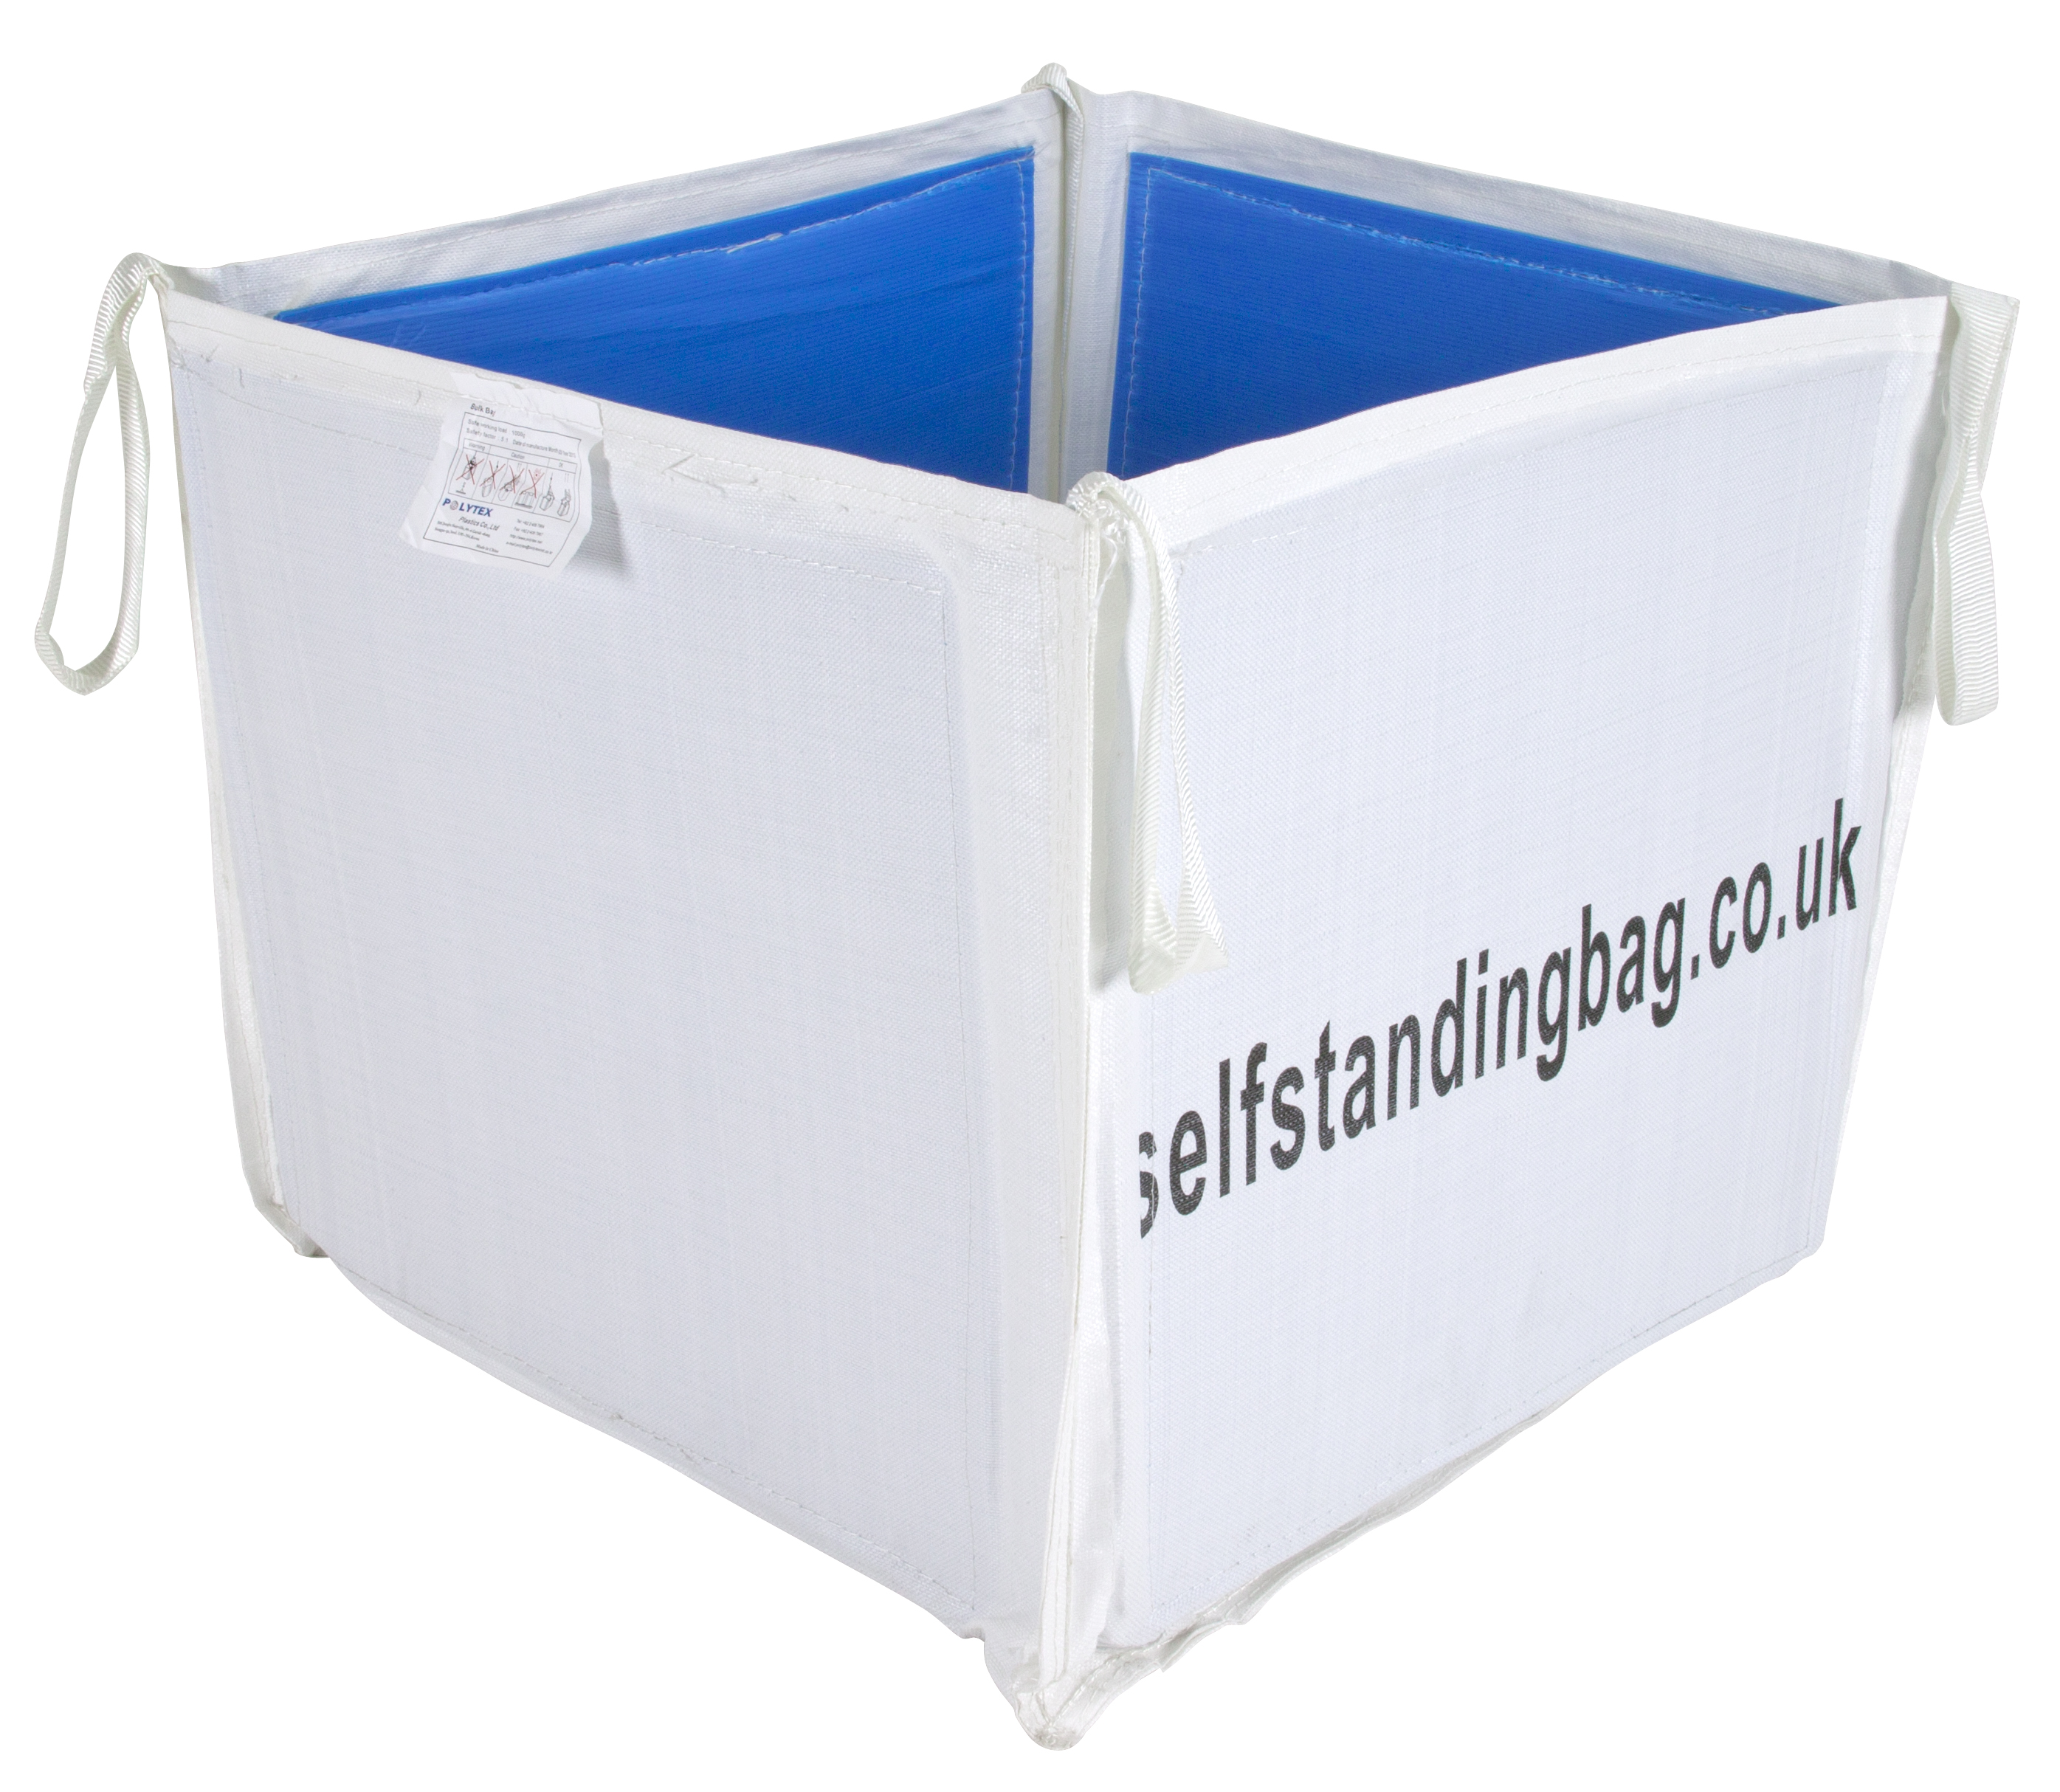 Self standing storage bags